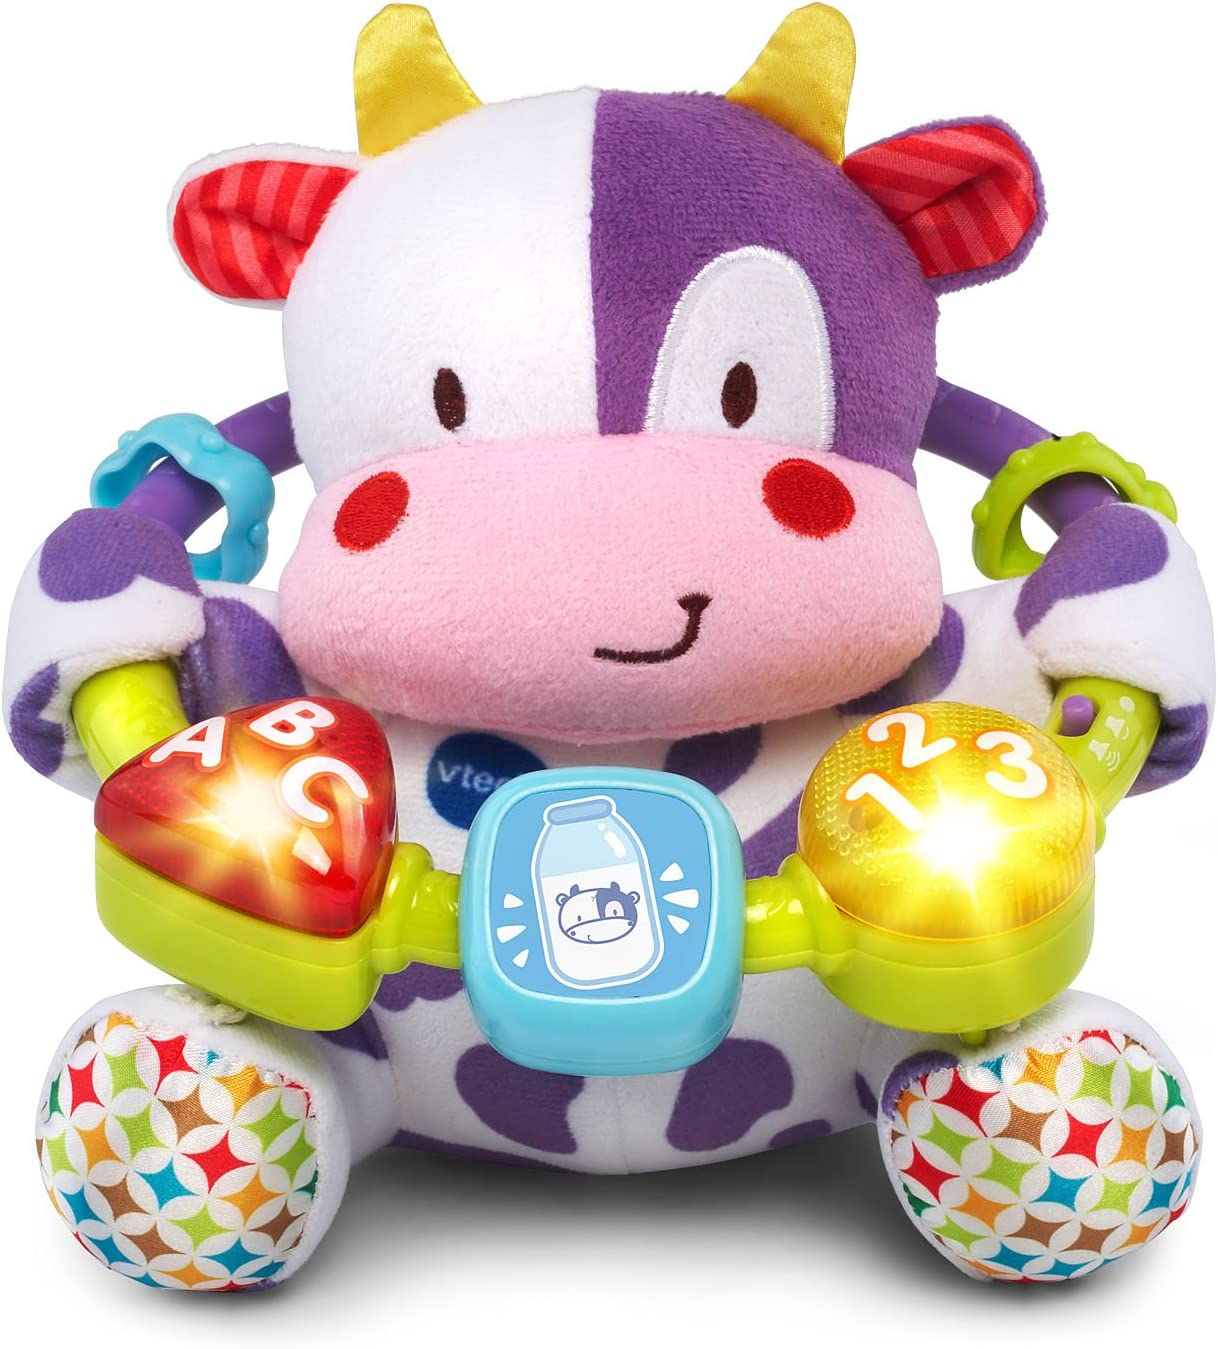 VTech Baby Lil' Critters Moosical Beads  Exclusive, Purple: Toys & Games